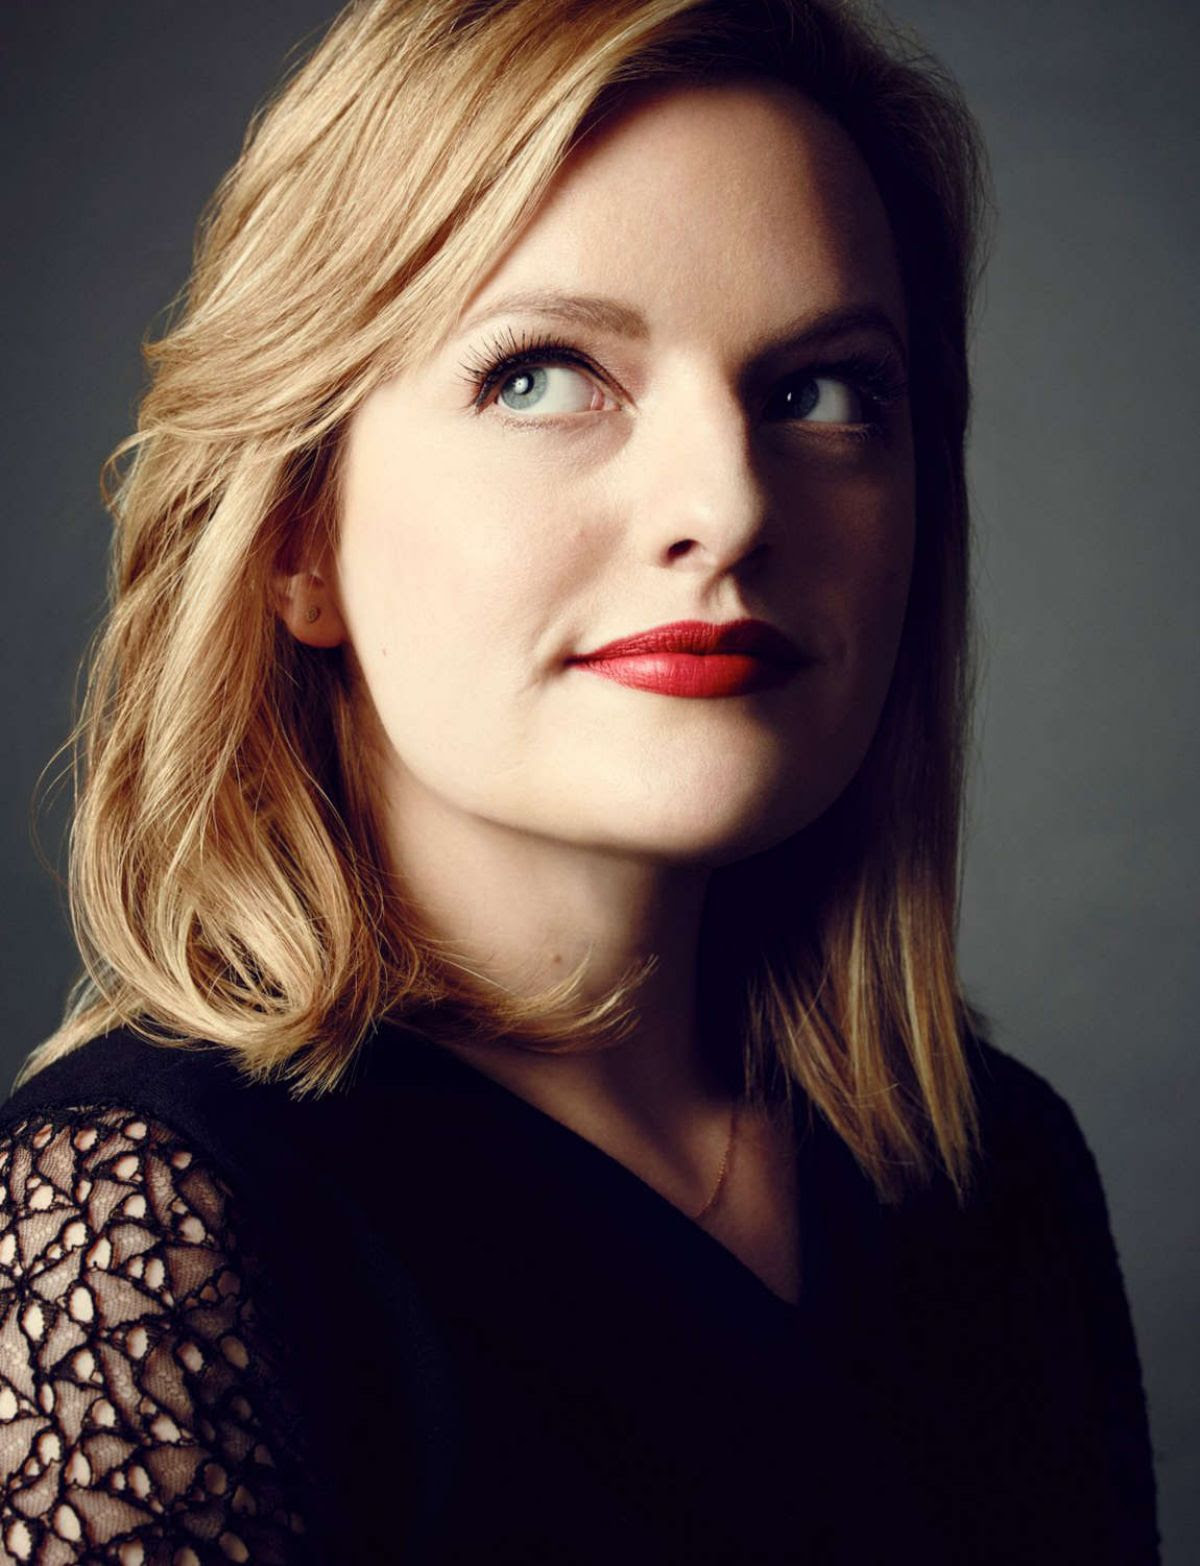 ELIZABETH MOSS in The Hollywood Reporter, March 2015 Issue